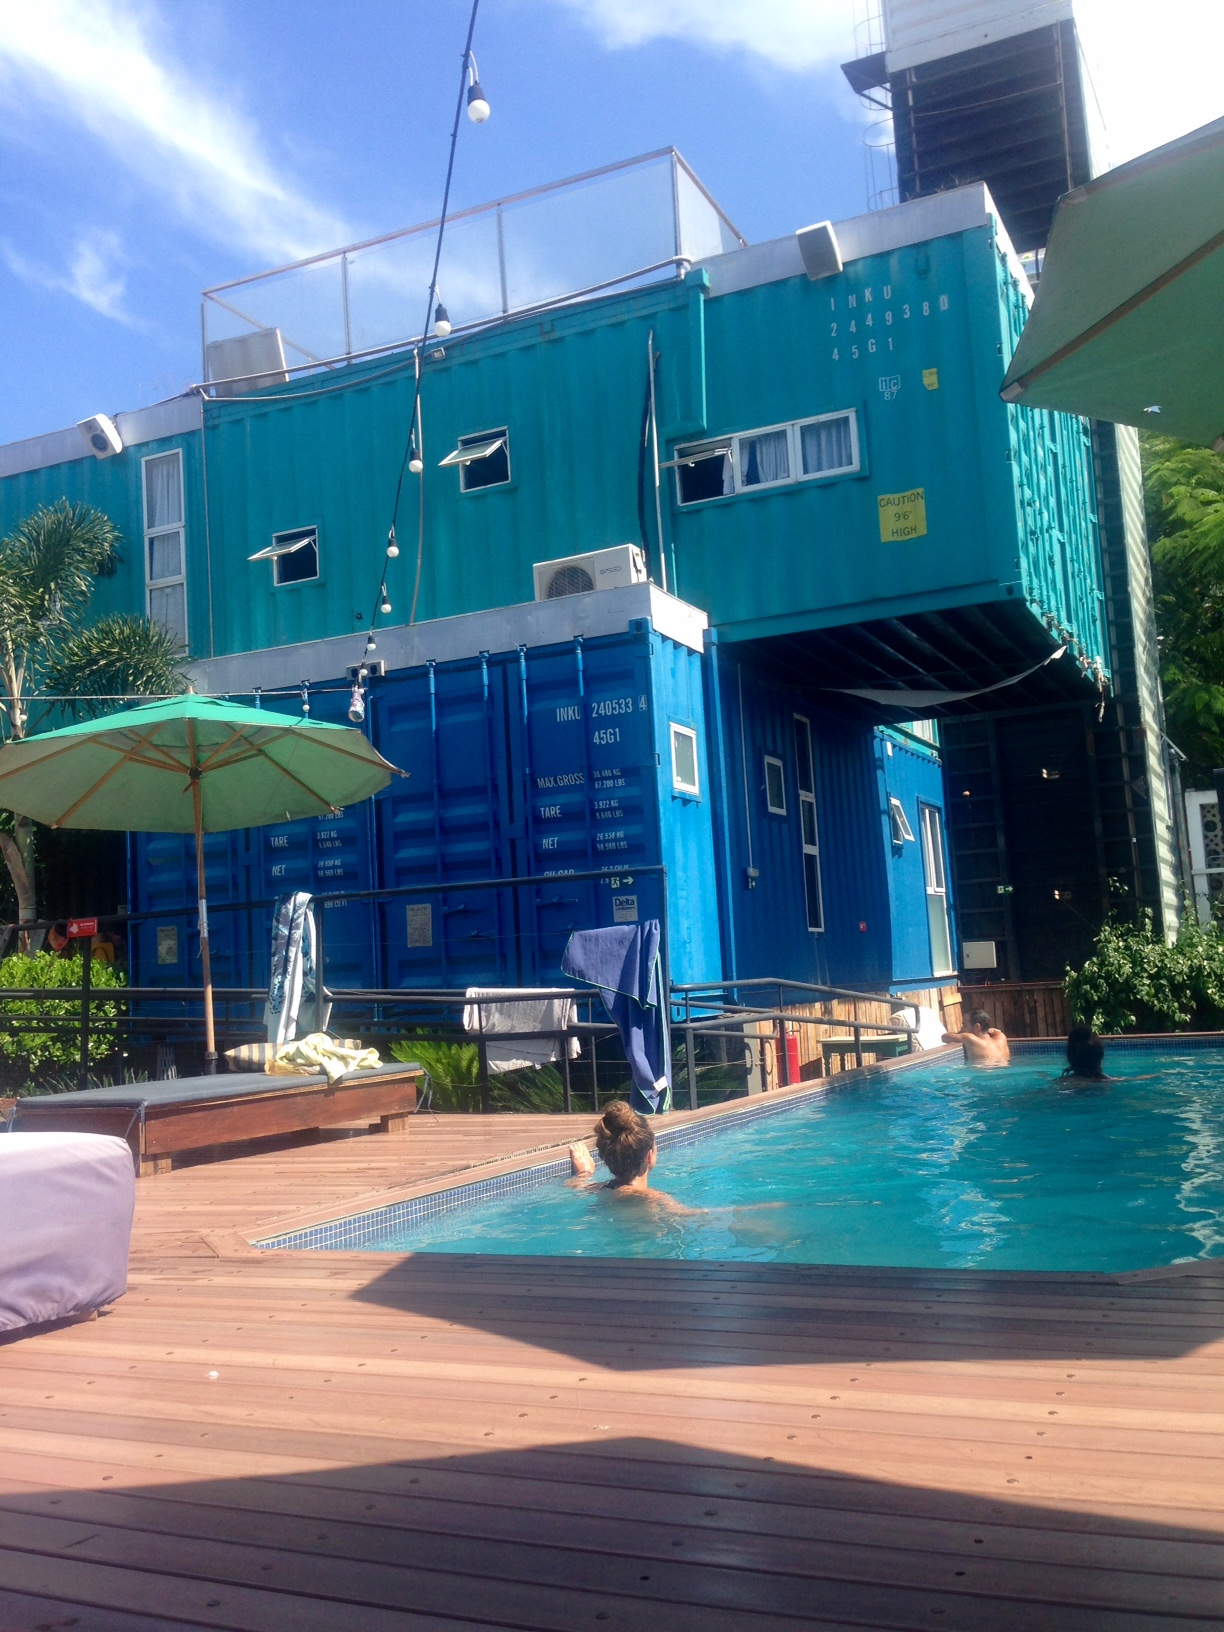 The pool at Tetris container hostel